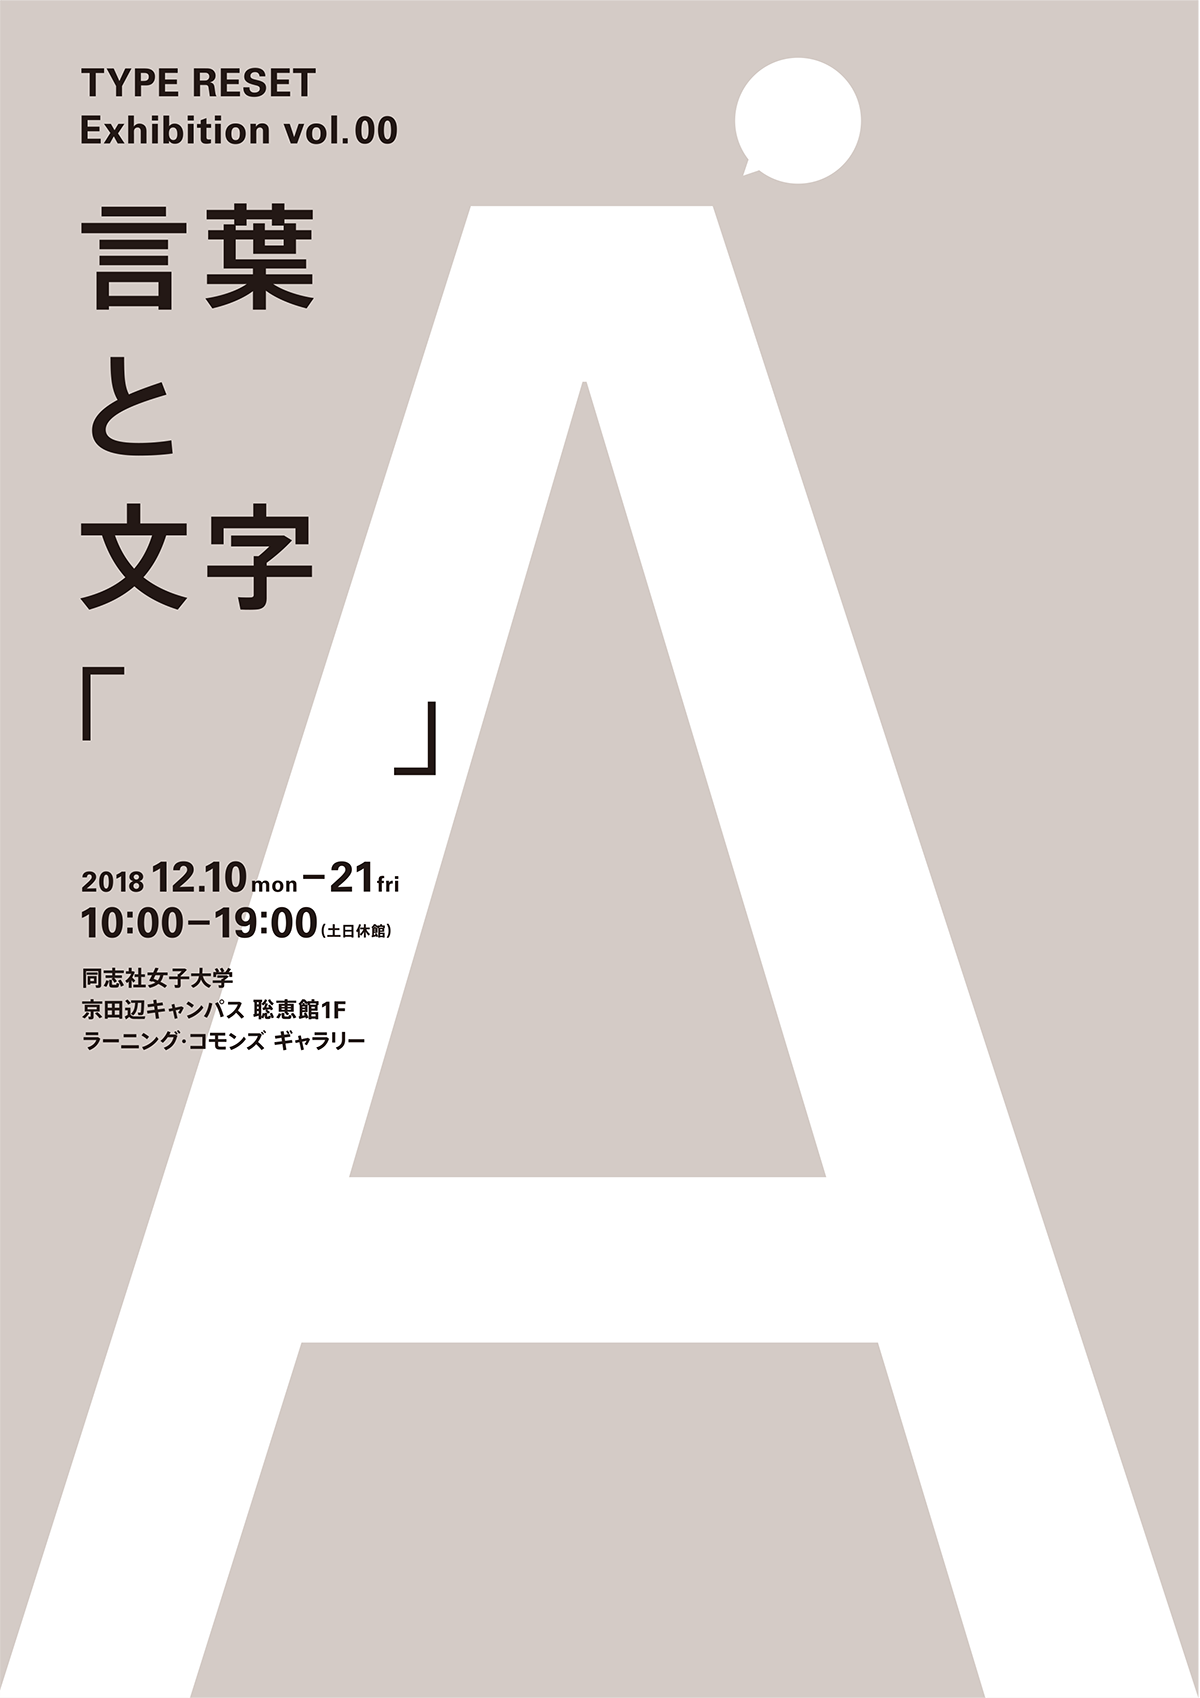 TYPE RESET Exhibition vol. 00 言葉と文字「   」